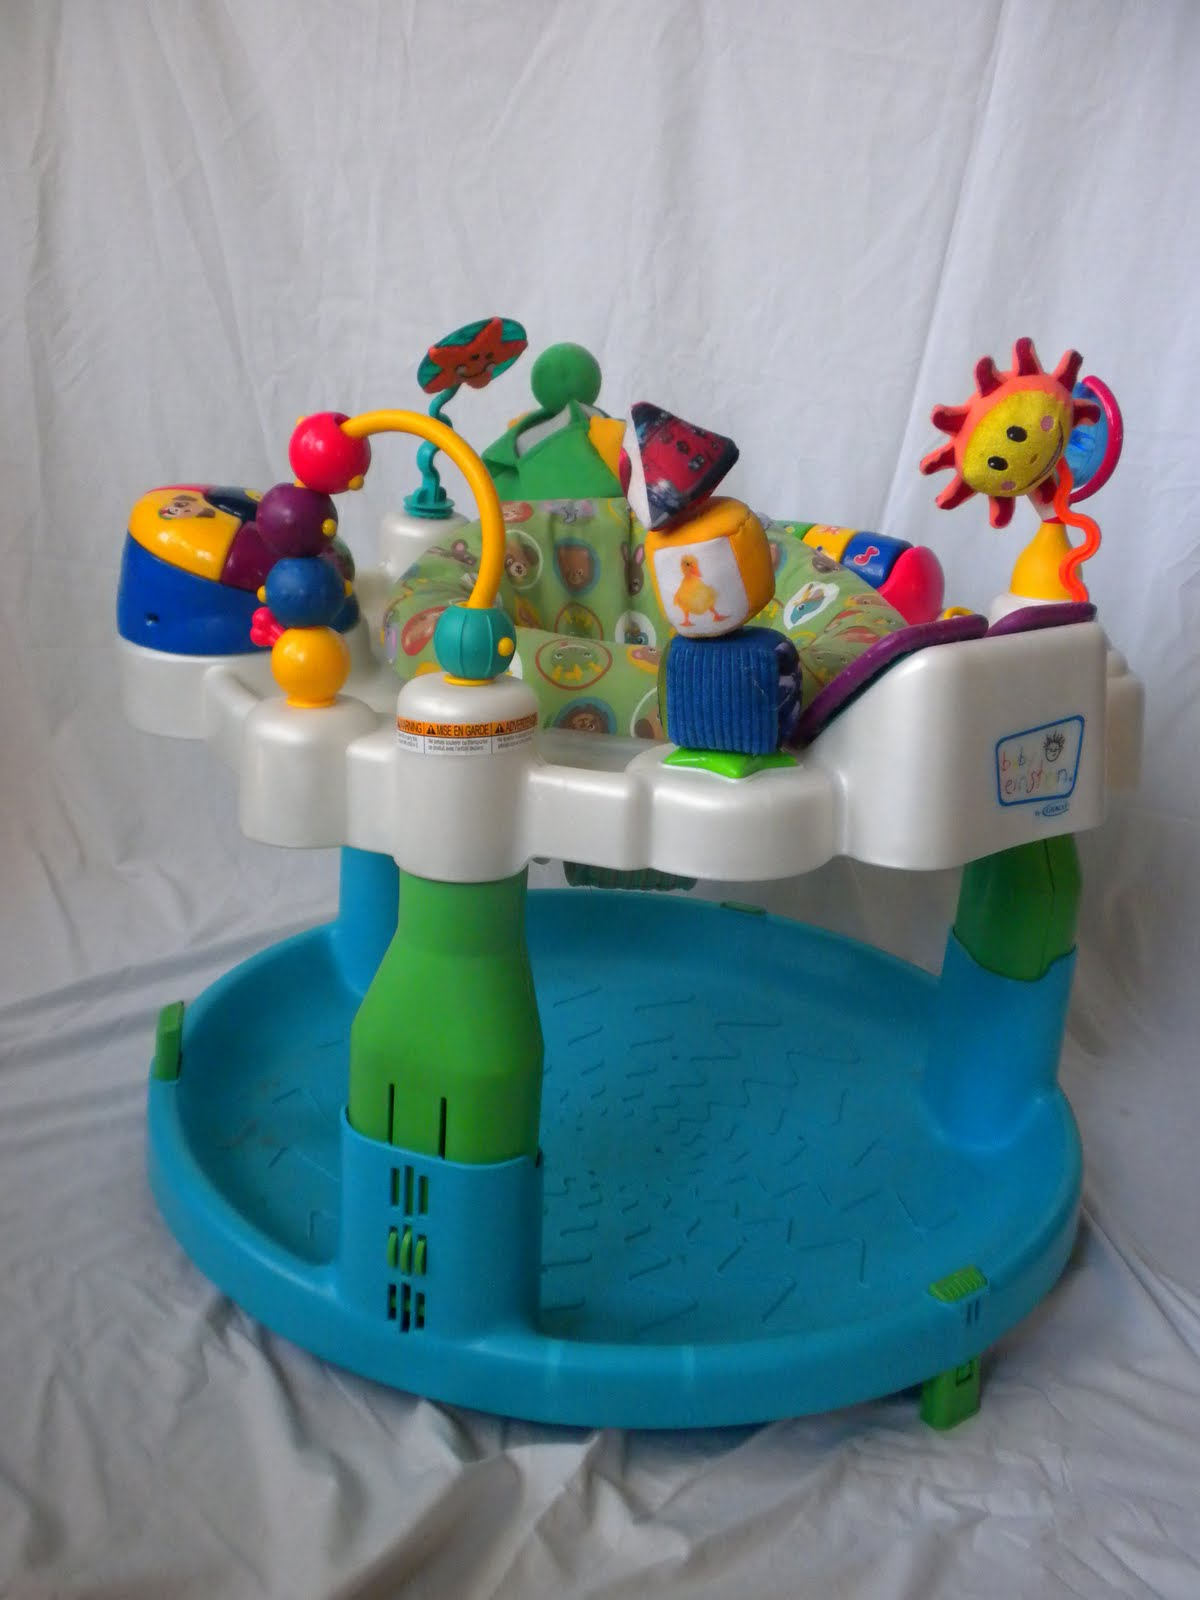 Infant Feeding Chair Swivel Wicker Patio Chairs Please Buy Our Stuff: Baby Einstein Exersaucer Discovery Center - $50